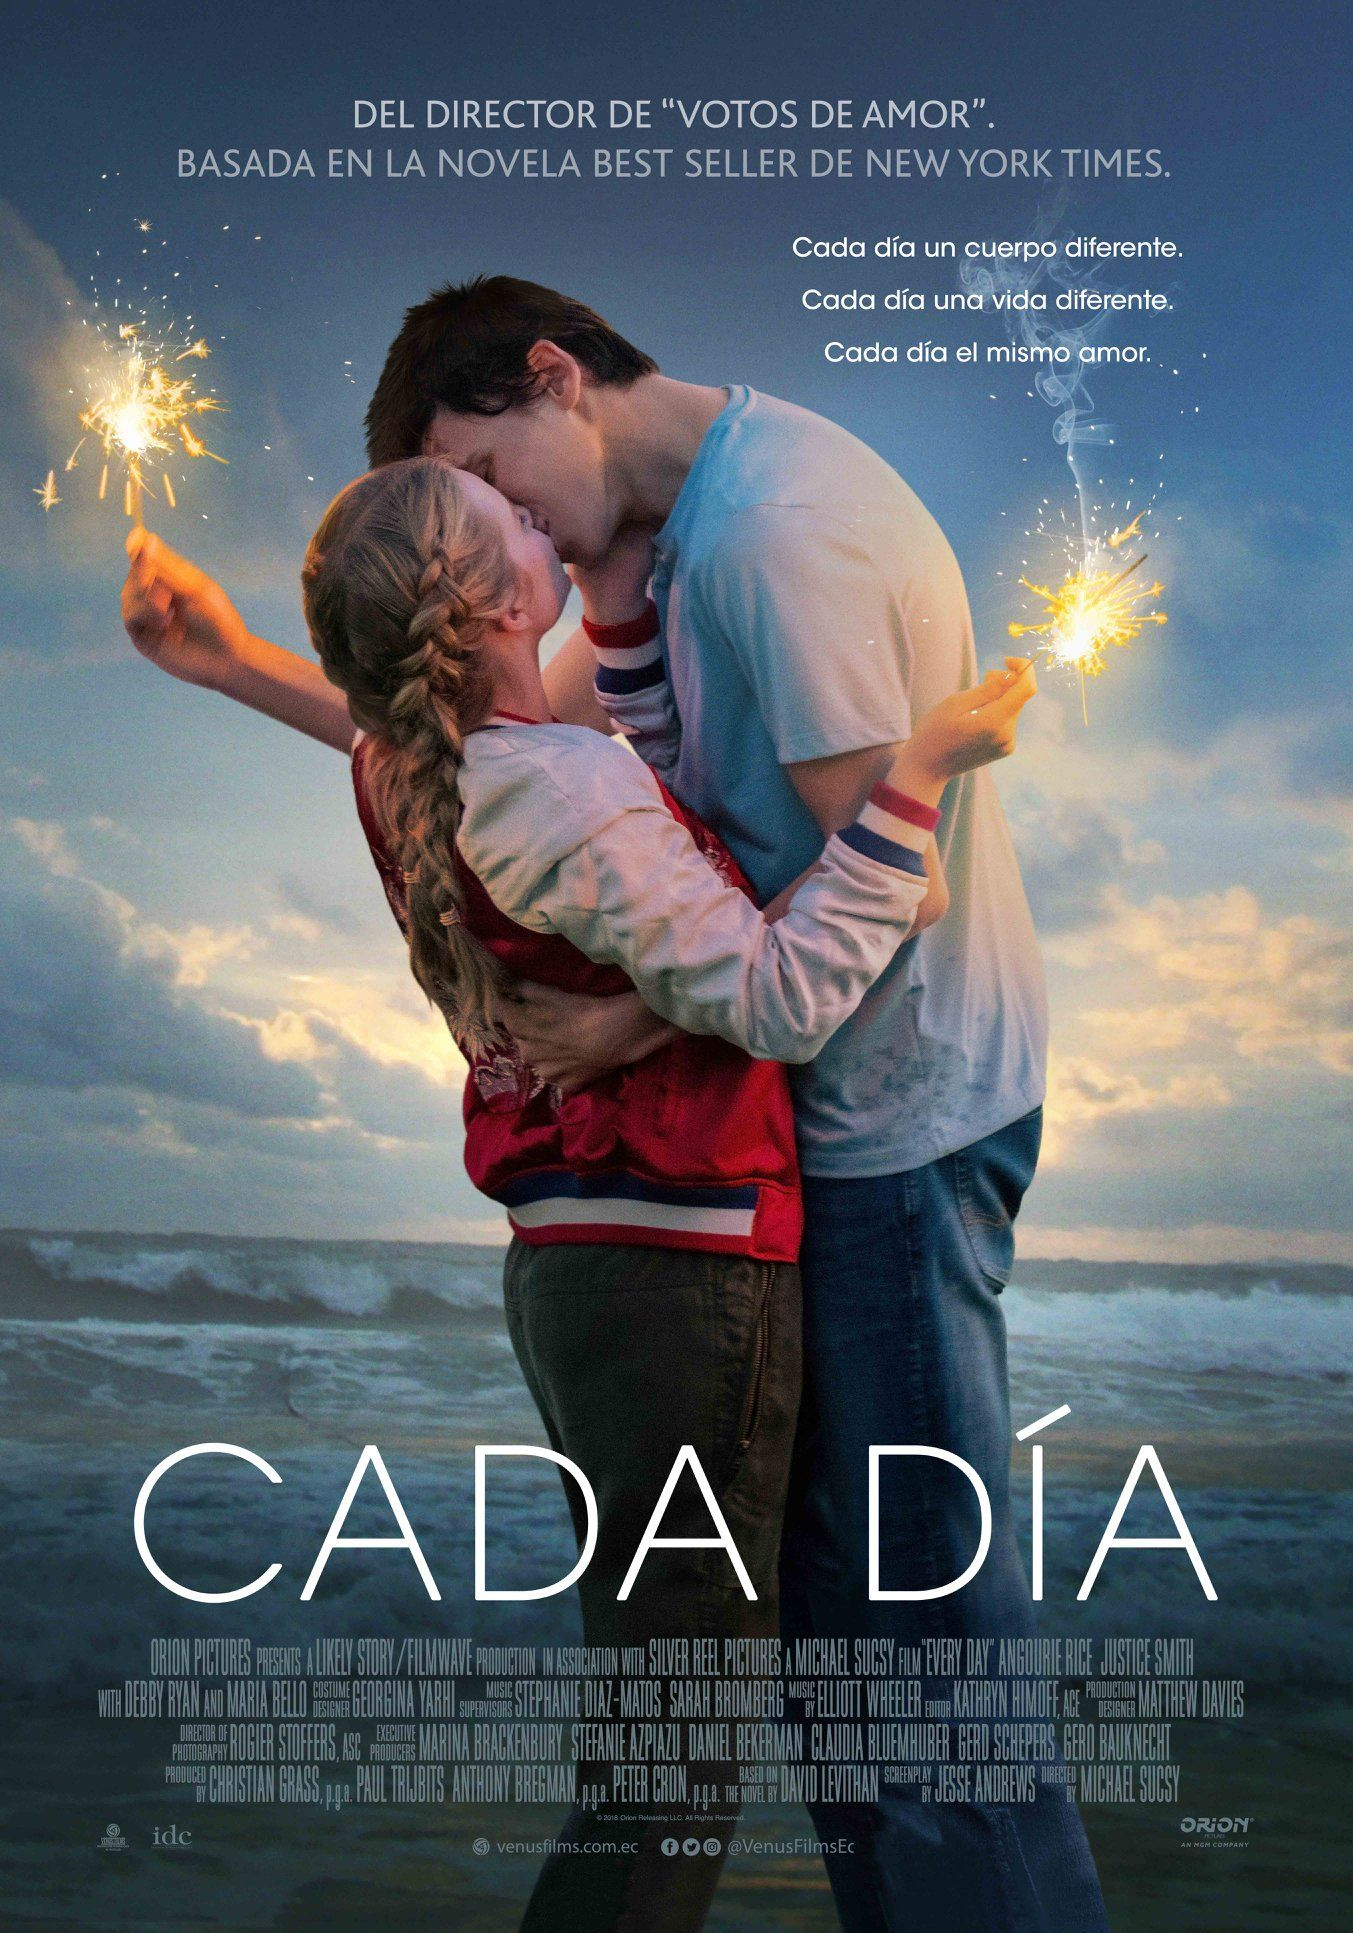 Cada Día Pelicula Romántica Completa En Español Latino Hd Romantic Movies Full Movies Streaming Movies Online